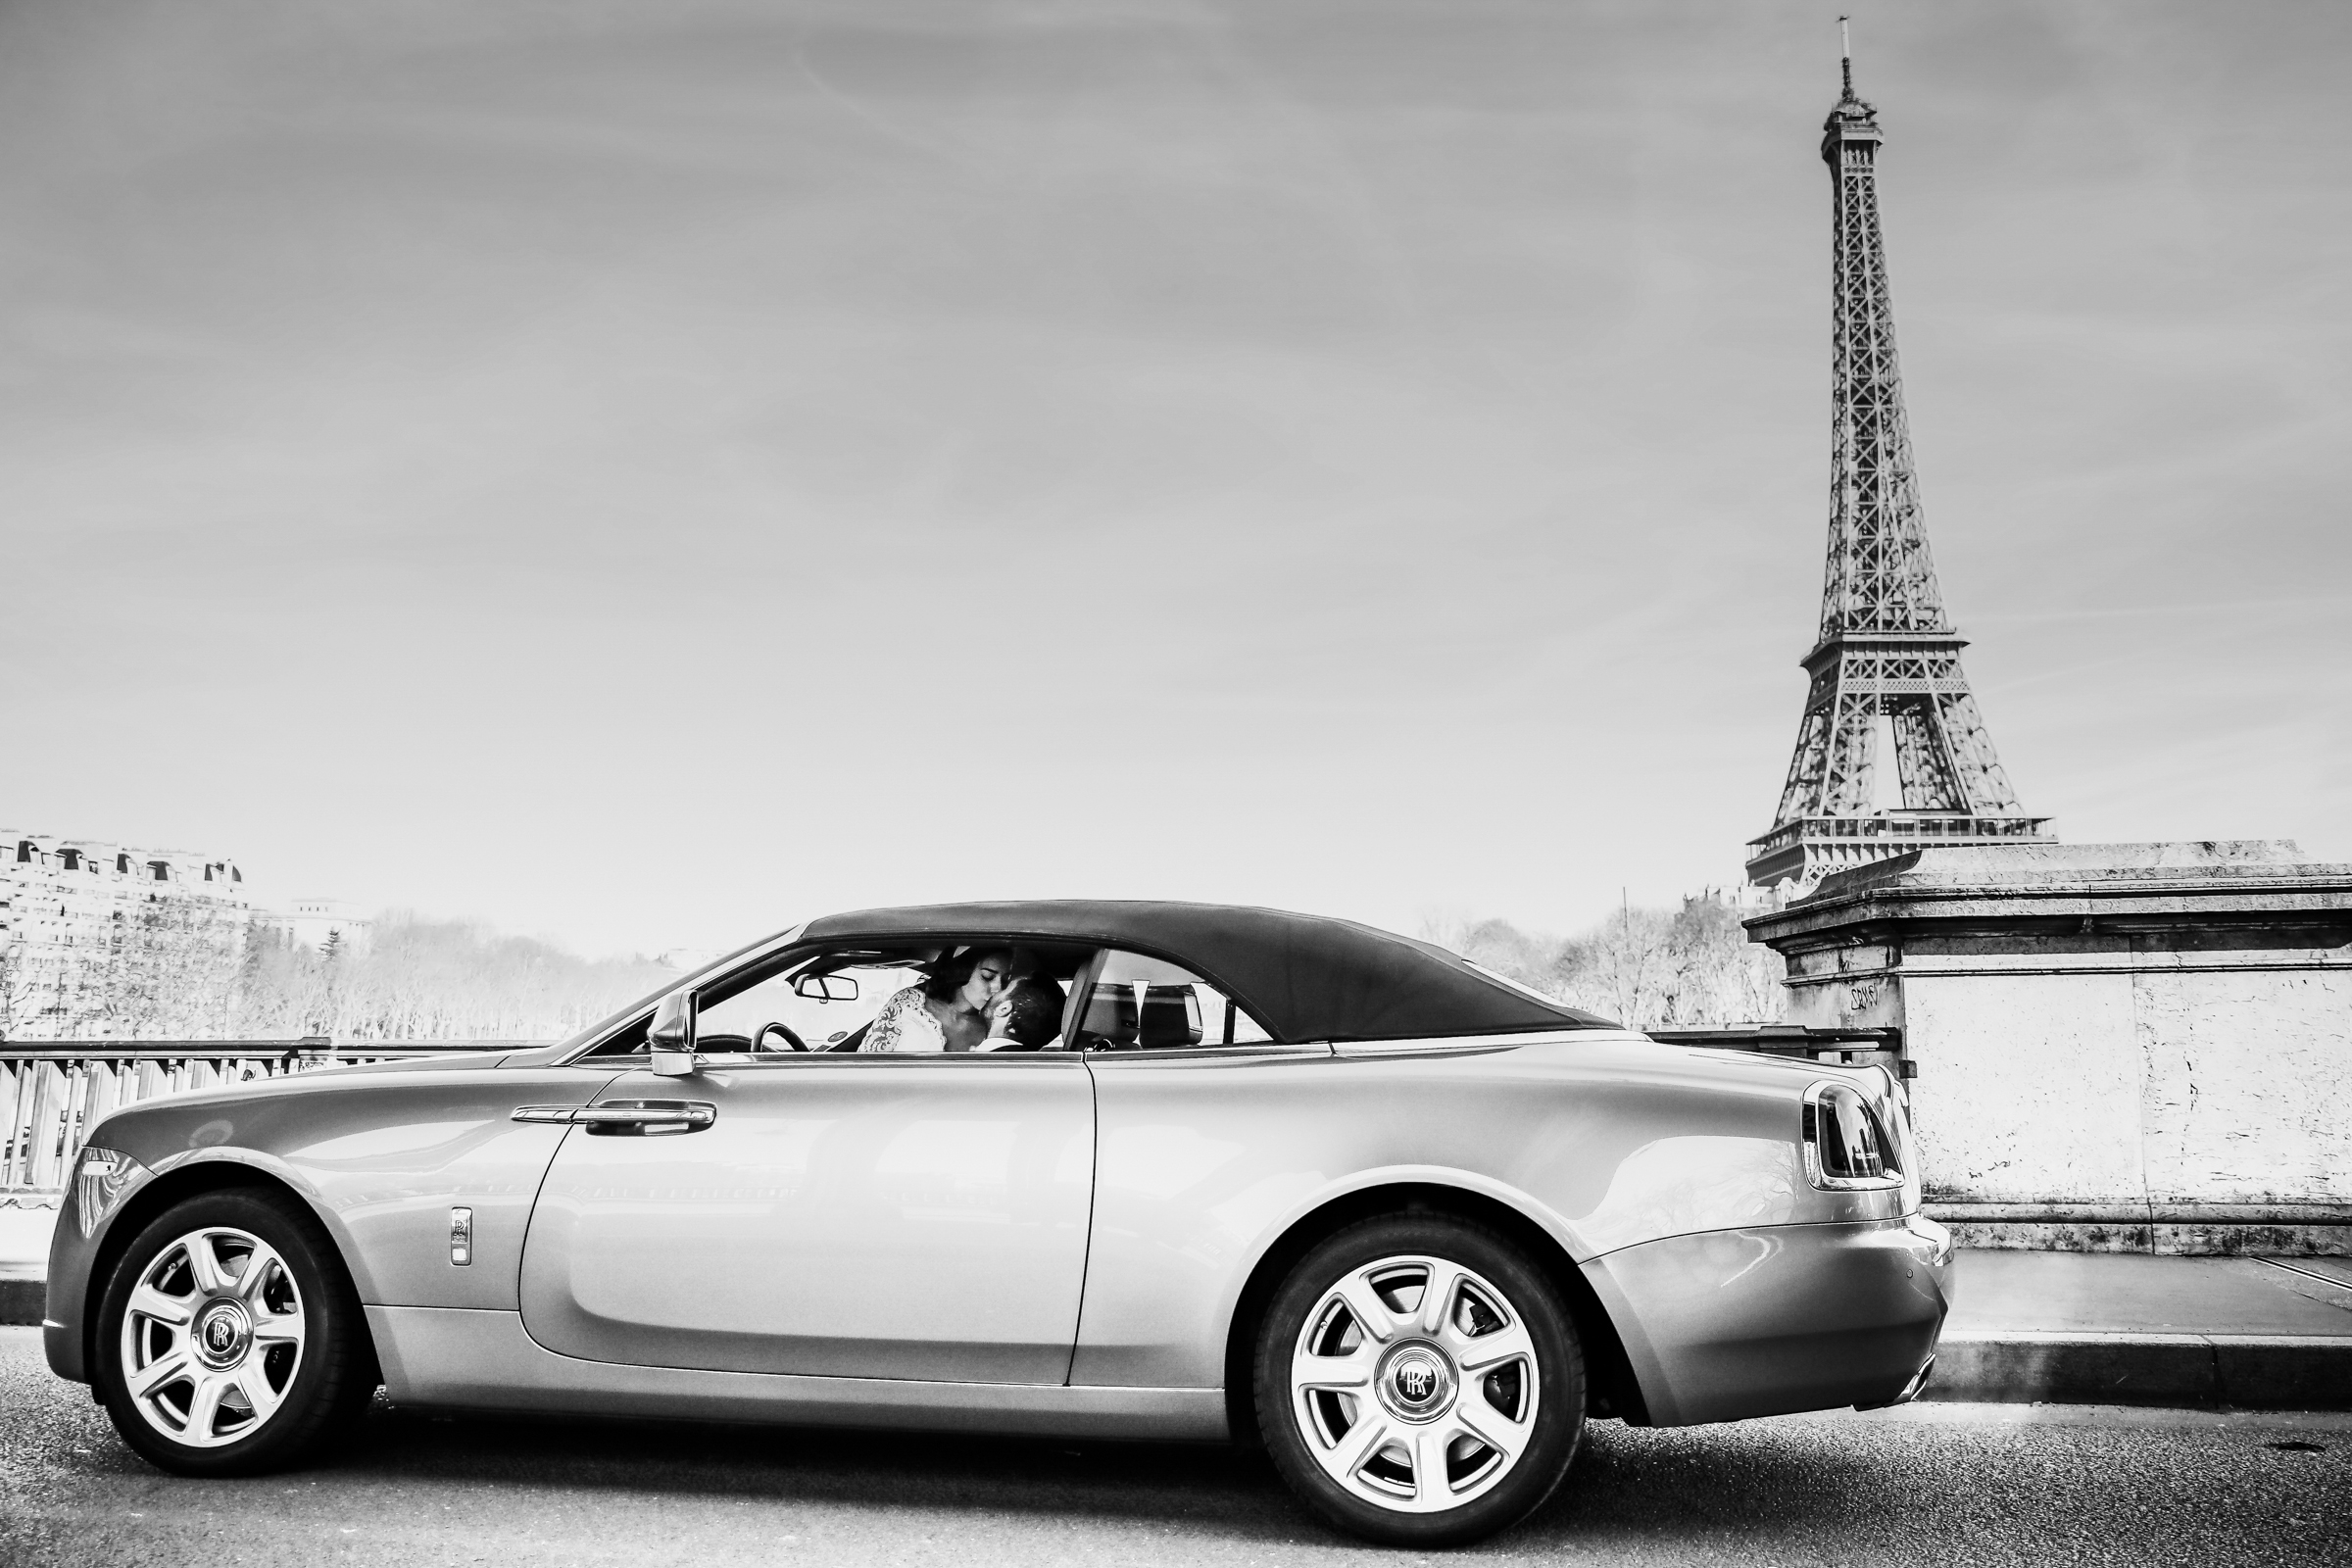 Couple kissing in car by the Eiffel Tower - photo by Julien Laurent Georges